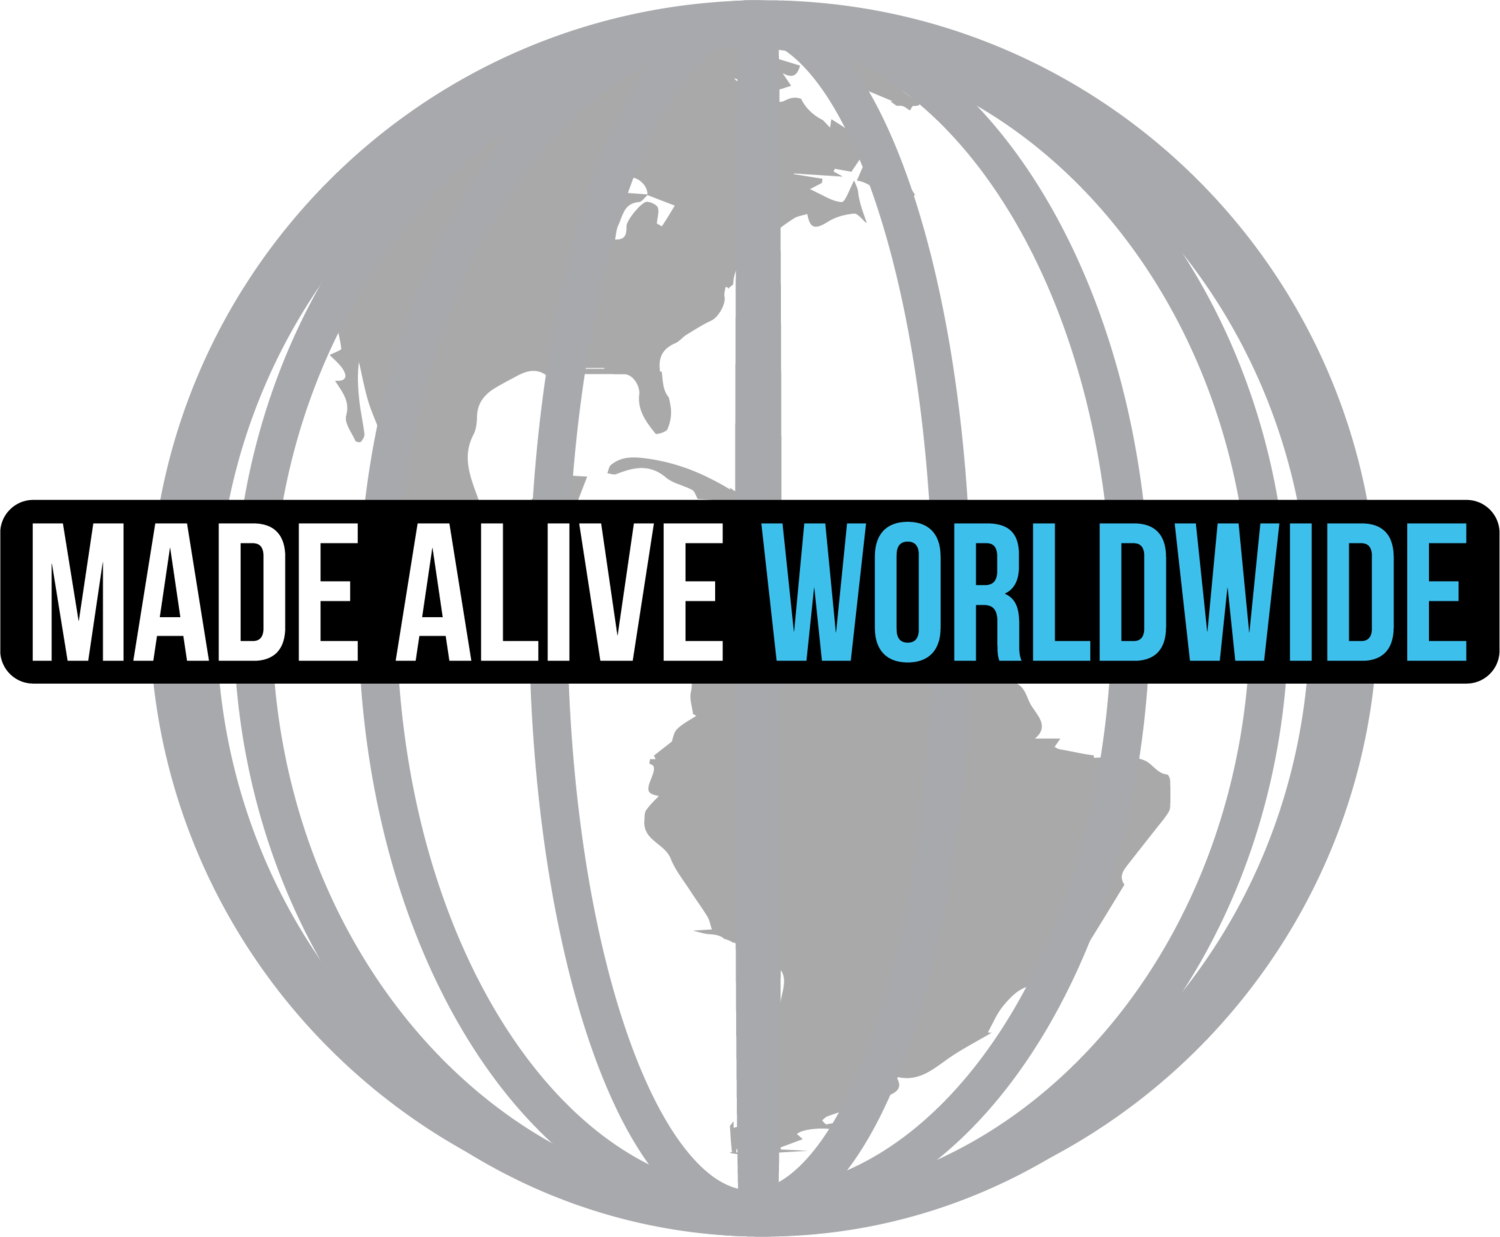 Made Alive Worldwide